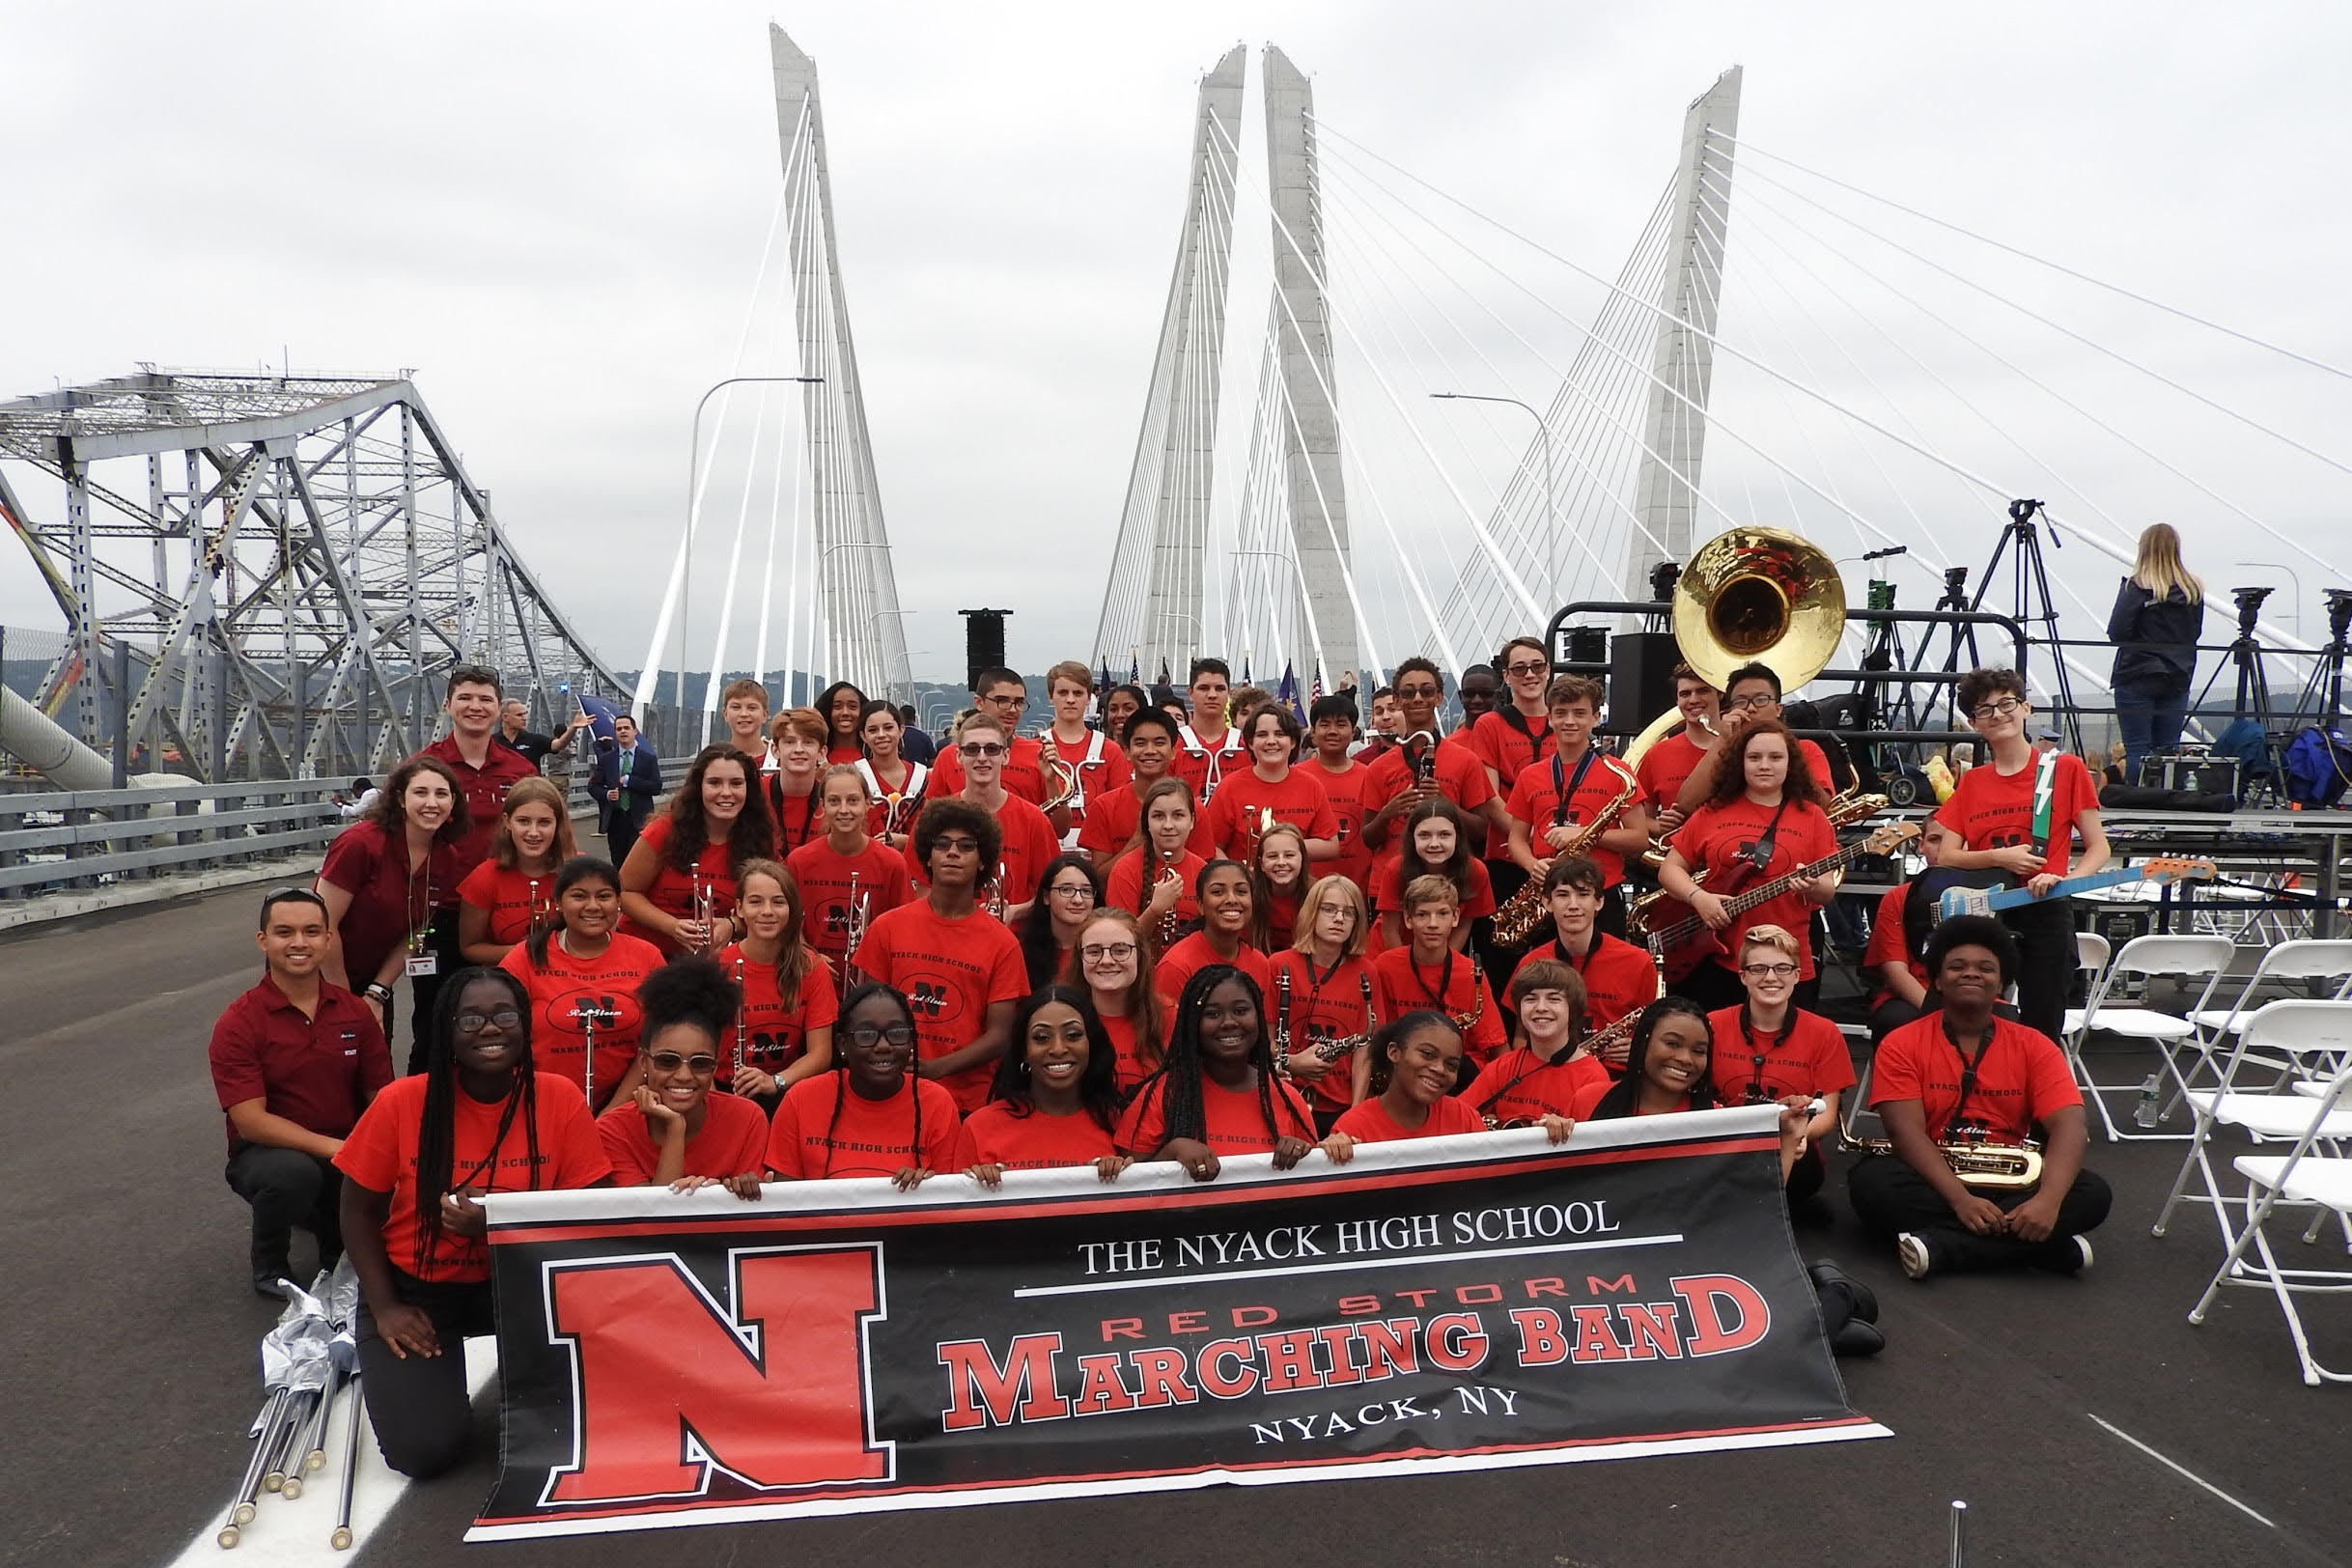 Nyack High School Marching Band performs on the new bridge span